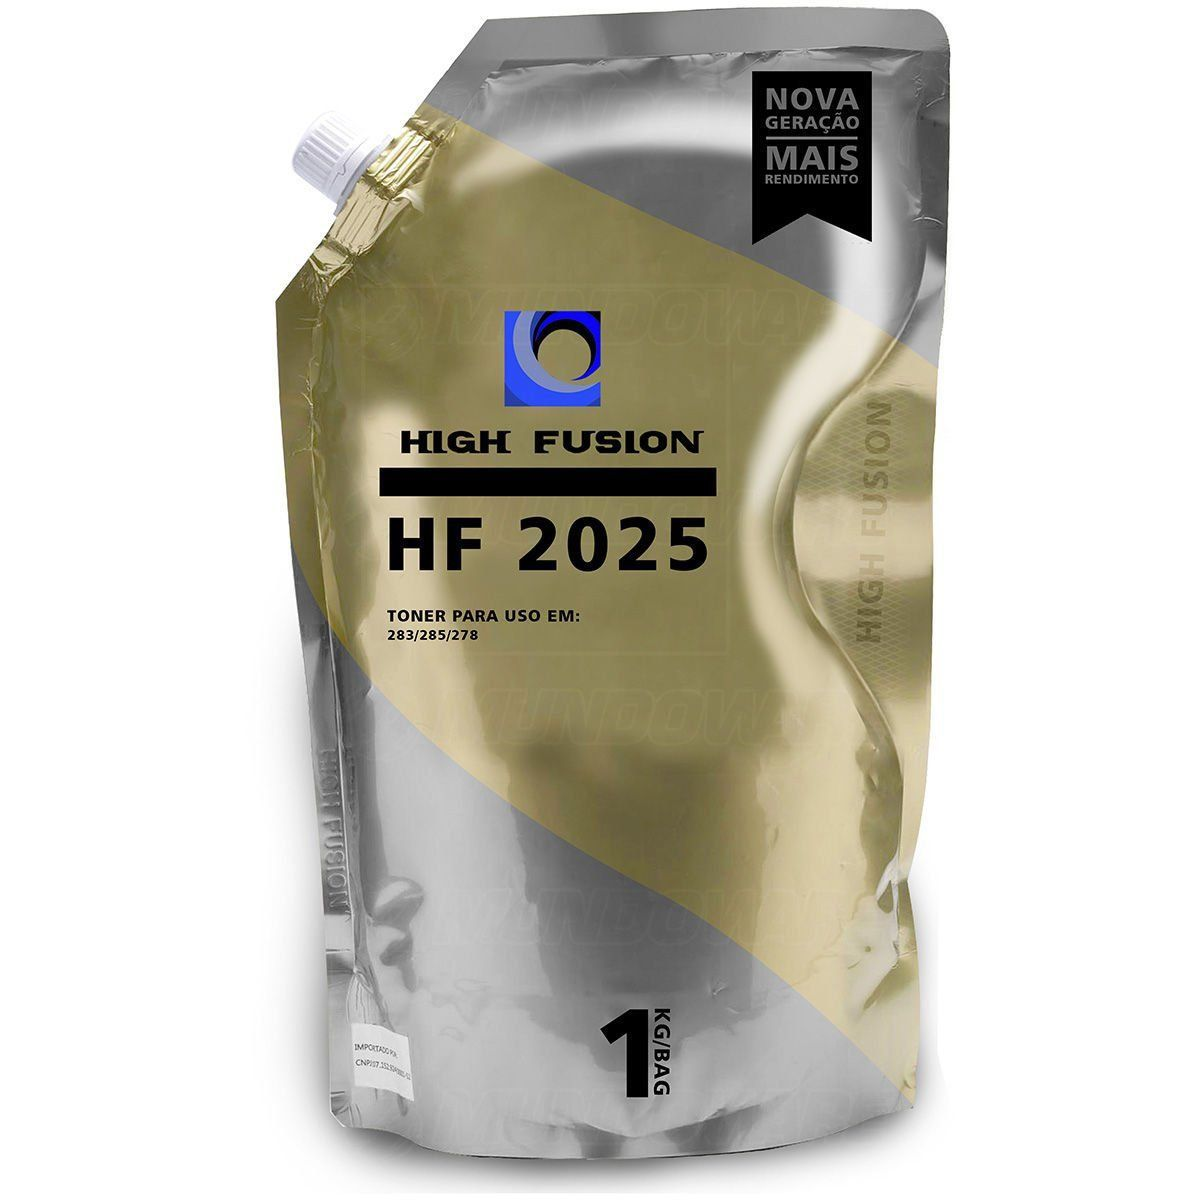 PO HP HIGH FUSION HF 2025 278/285/283 BAG 1 KG